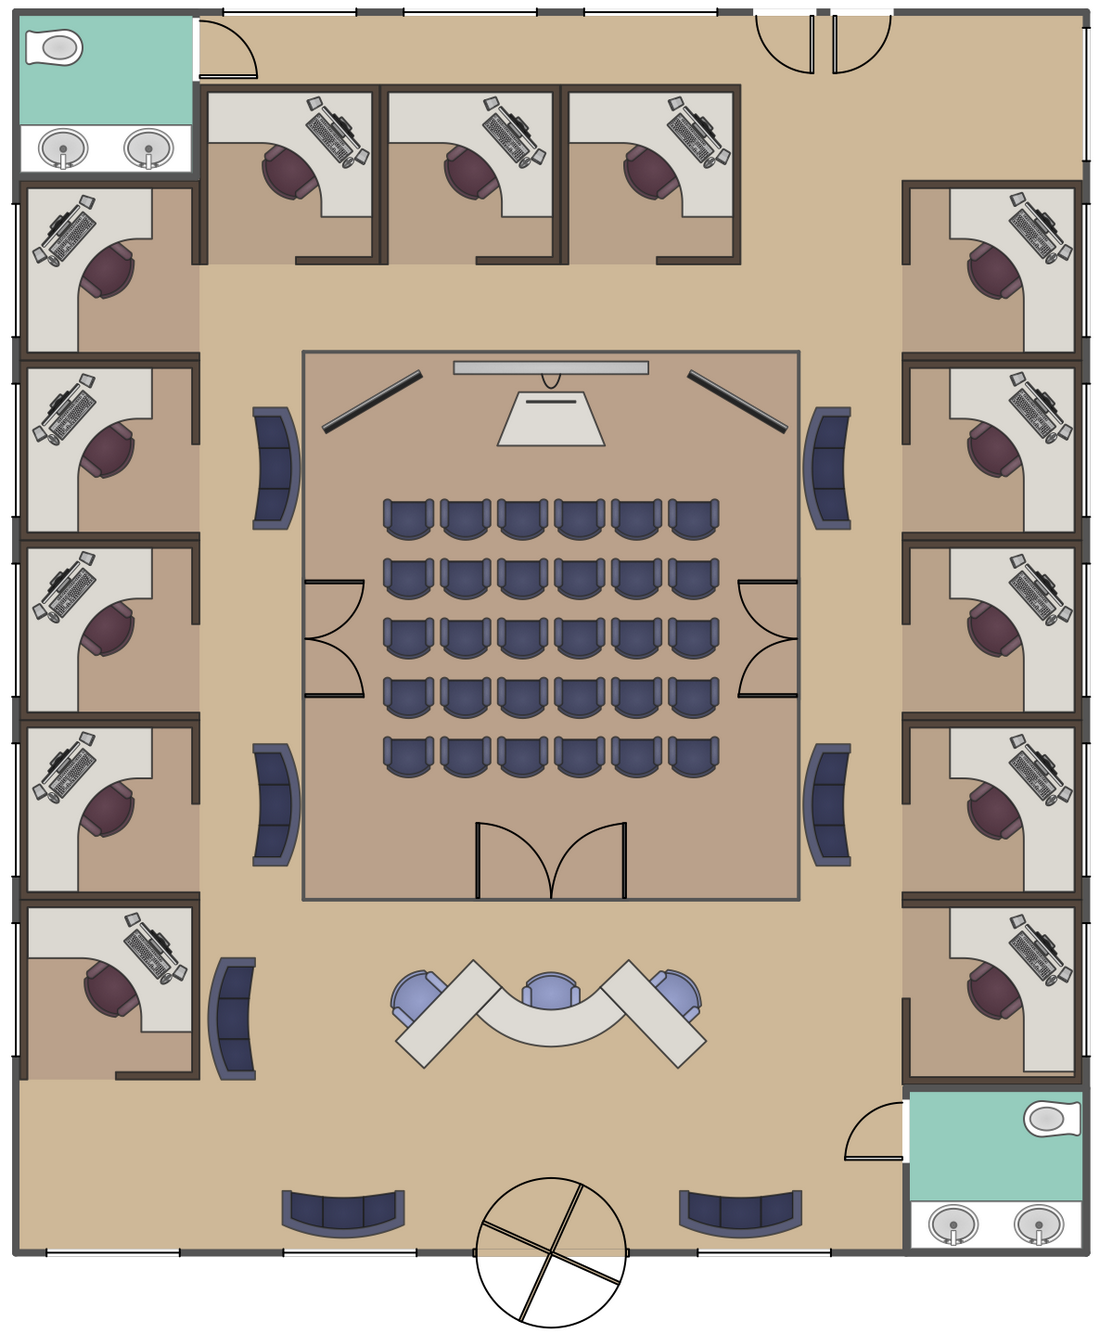 Structure clipart office block ConceptDraw Floor Office Solution Cabinet